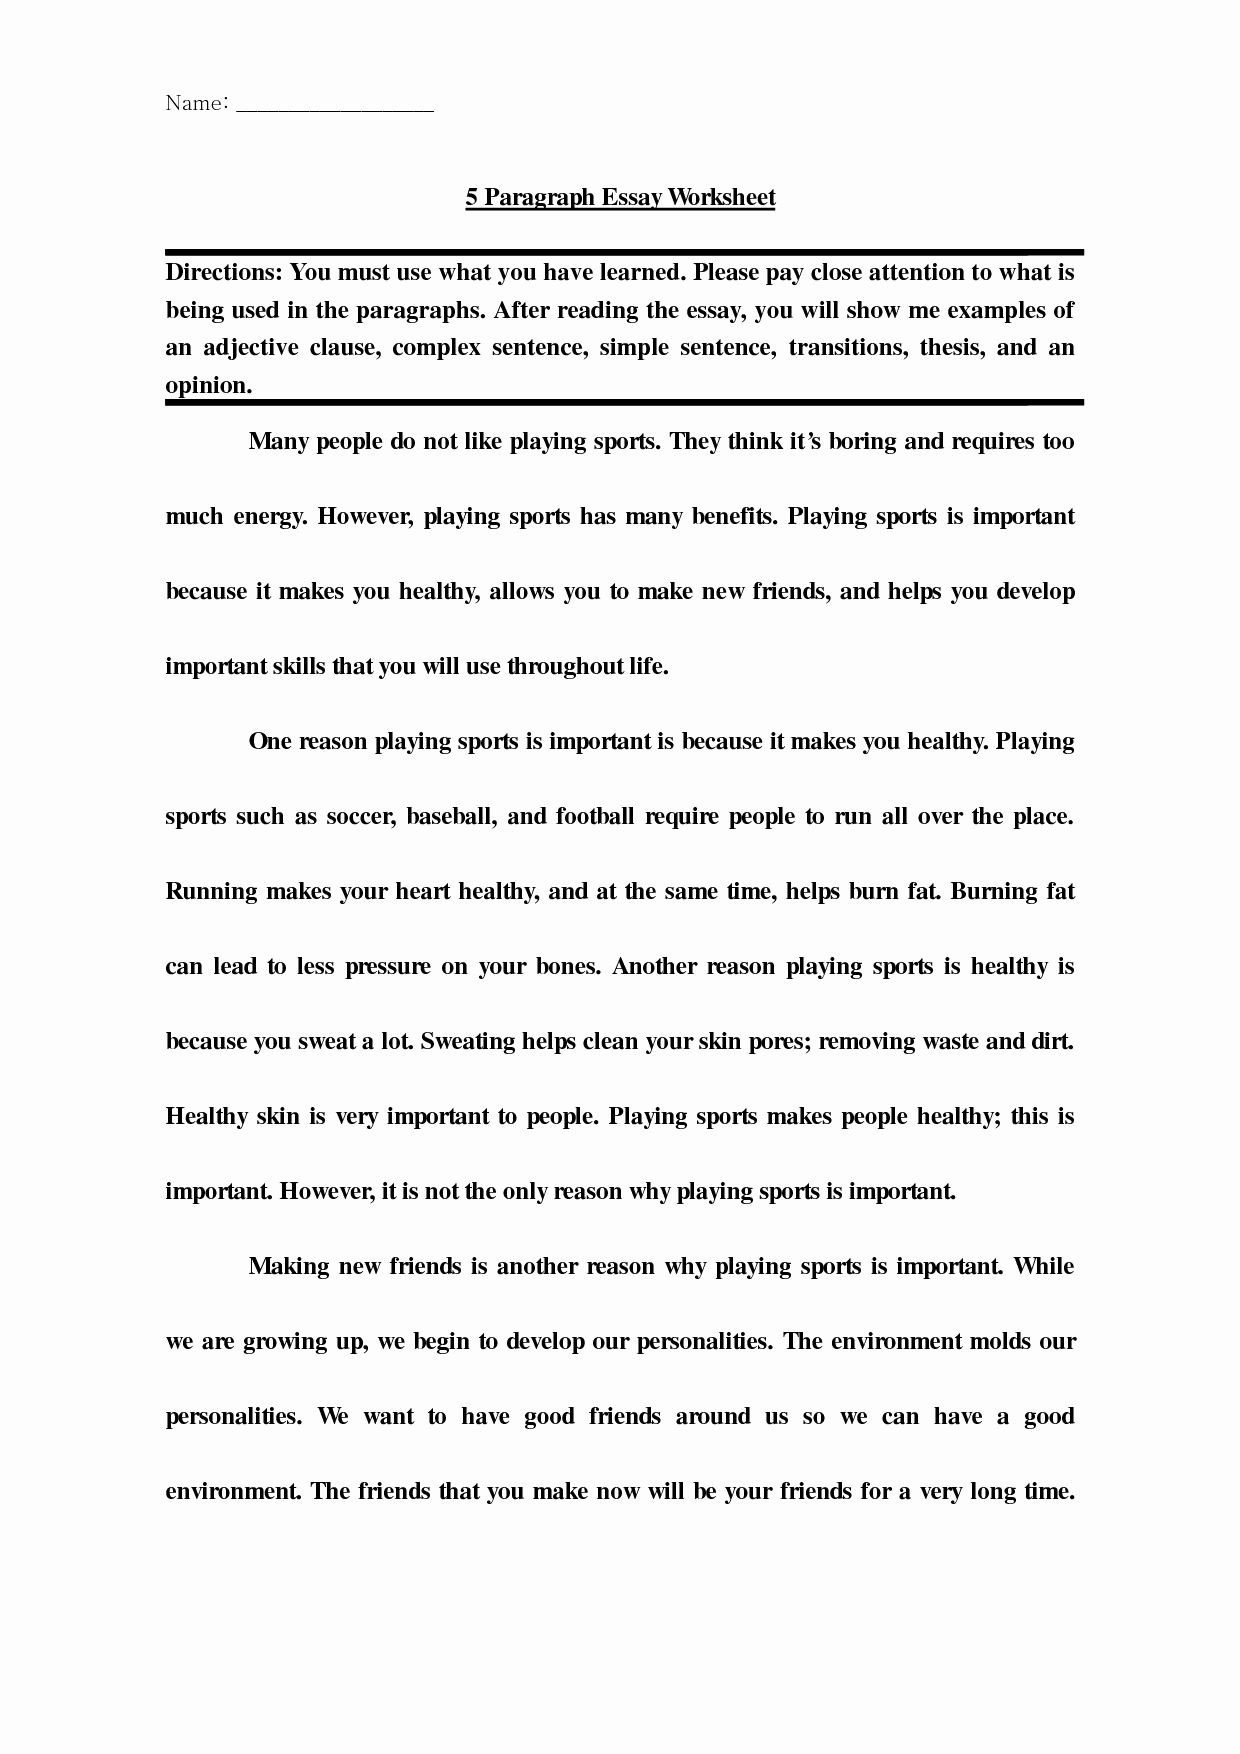 6th Grade Essay Writing Worksheets Example 5 Paragraph Essay Best 6th Grade Persuasive